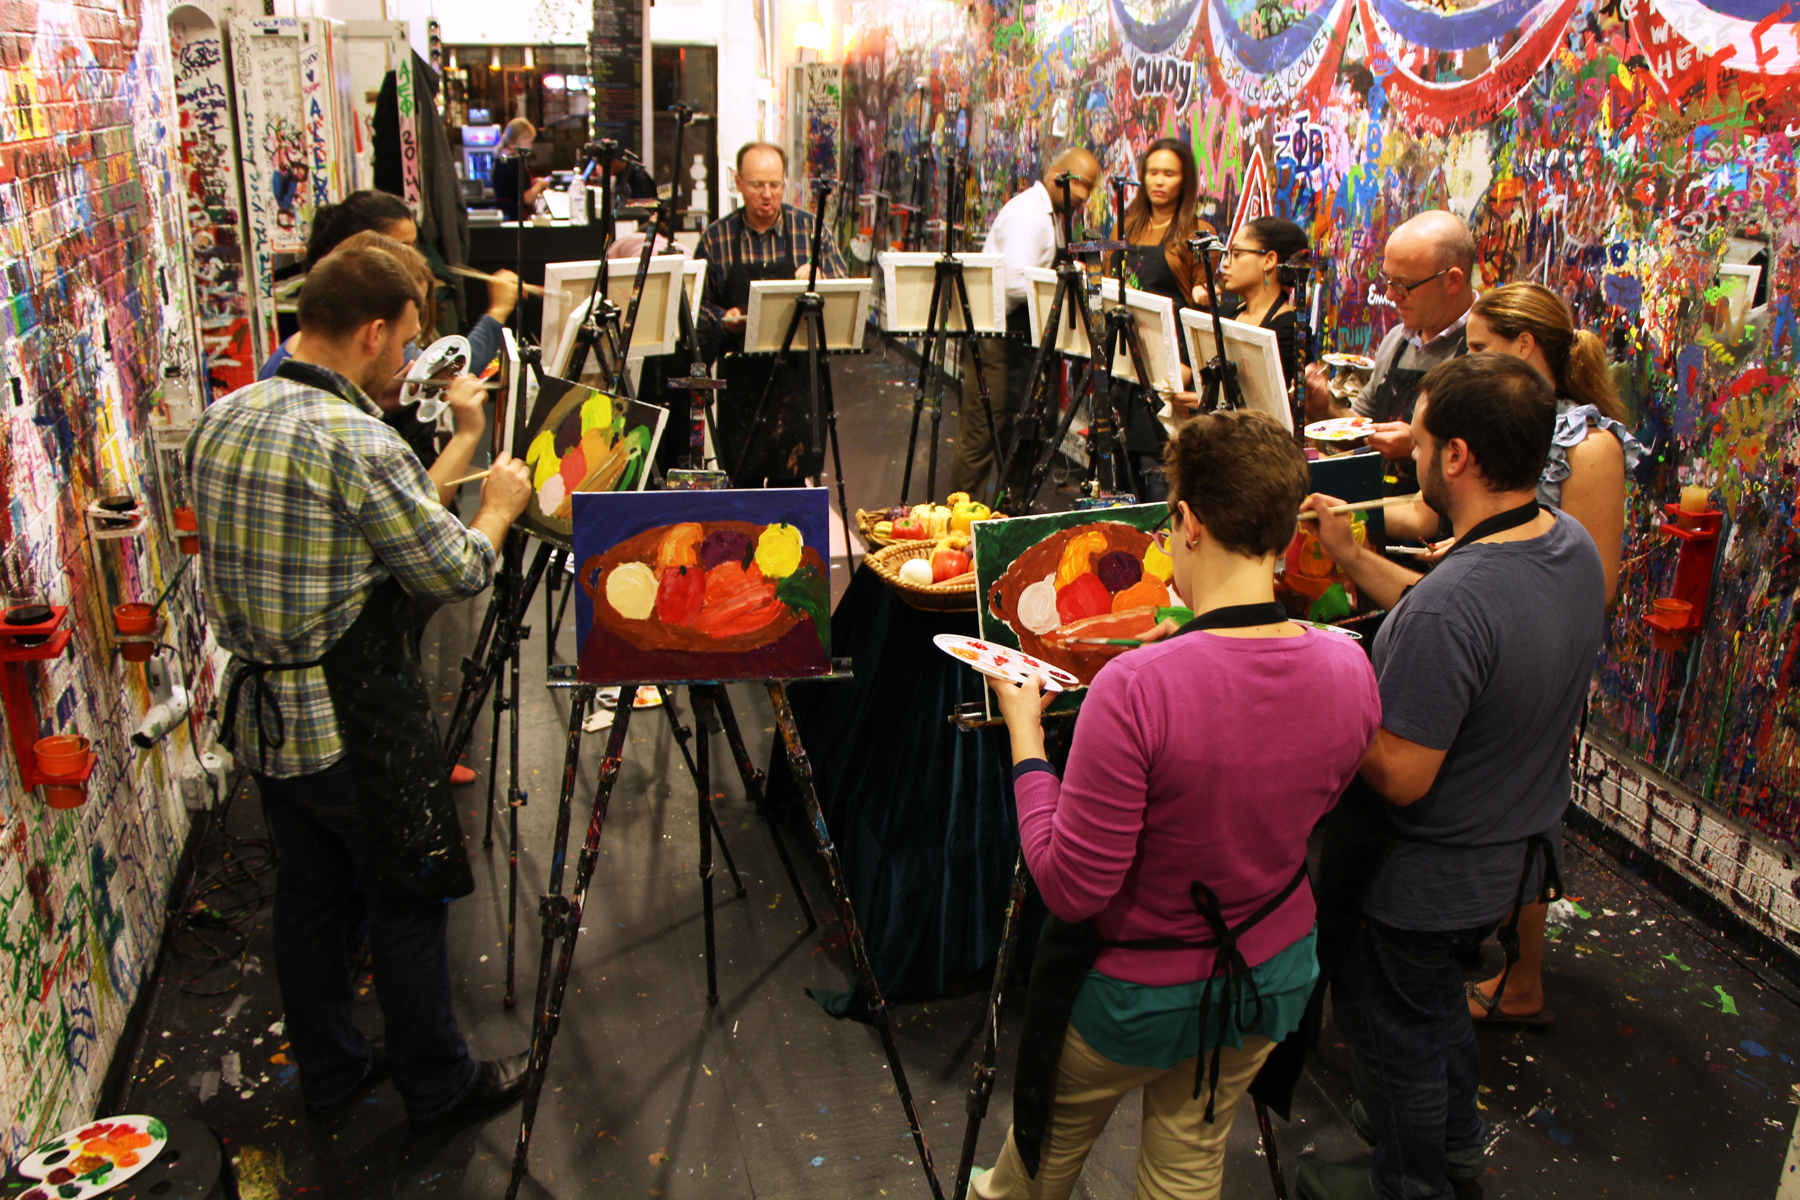 ArtJamz academy with unique guided art classes